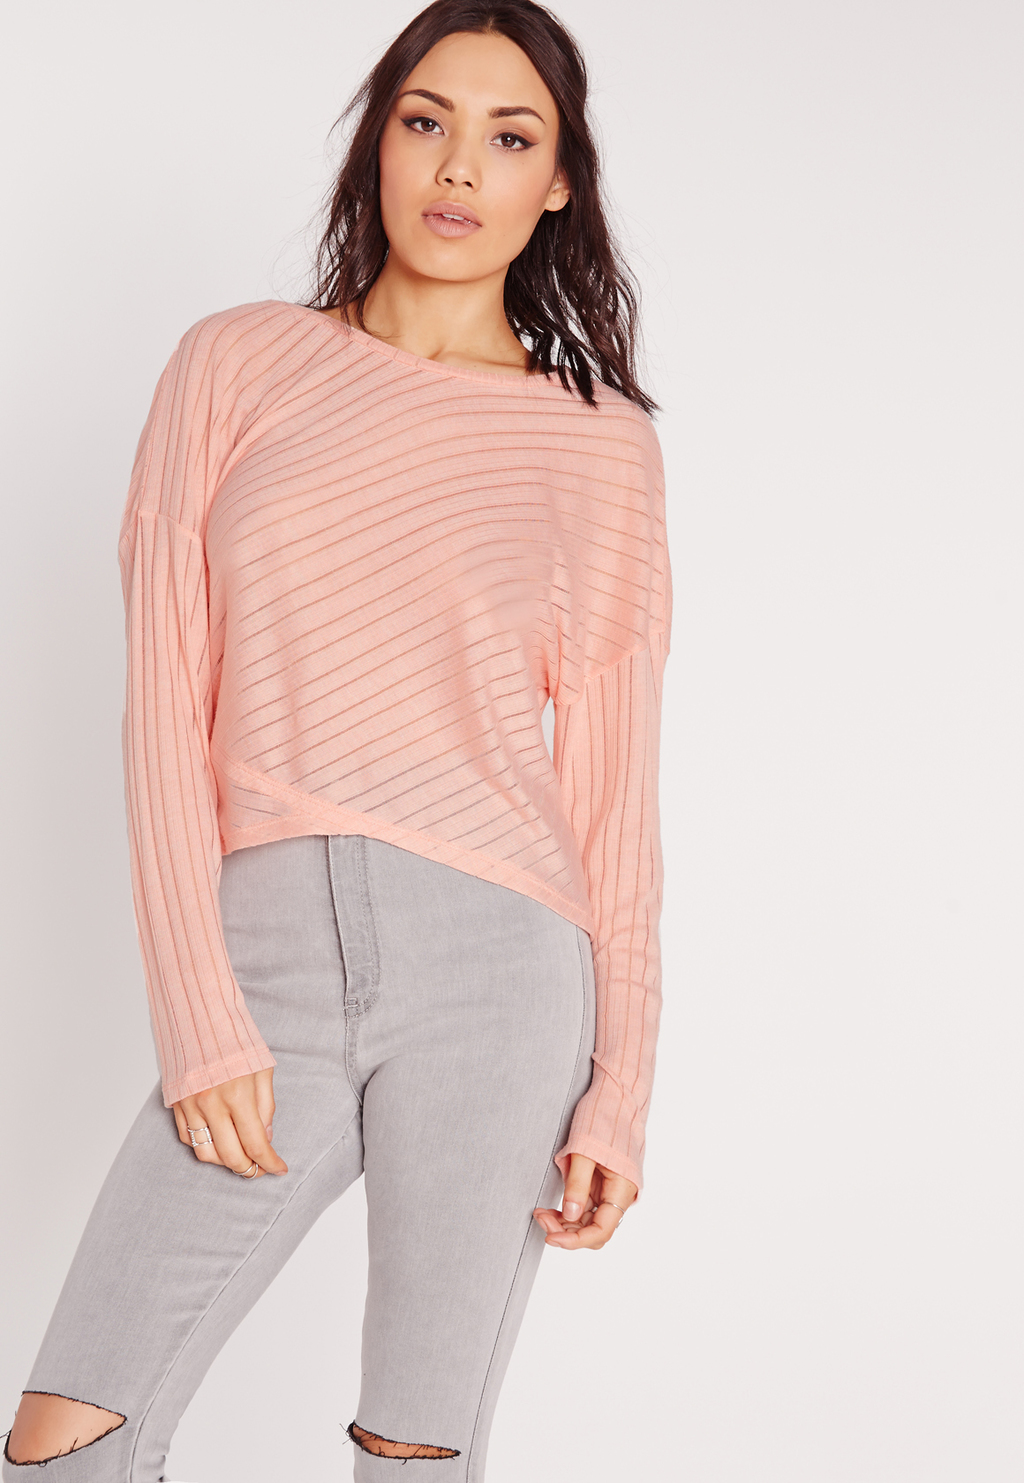 Sheer Stripe Rib Panel Top Coral, Pink - neckline: slash/boat neckline; pattern: striped; predominant colour: pink; occasions: casual; length: standard; style: top; fibres: polyester/polyamide - mix; fit: body skimming; sleeve length: long sleeve; sleeve style: standard; pattern type: fabric; texture group: jersey - stretchy/drapey; season: s/s 2016